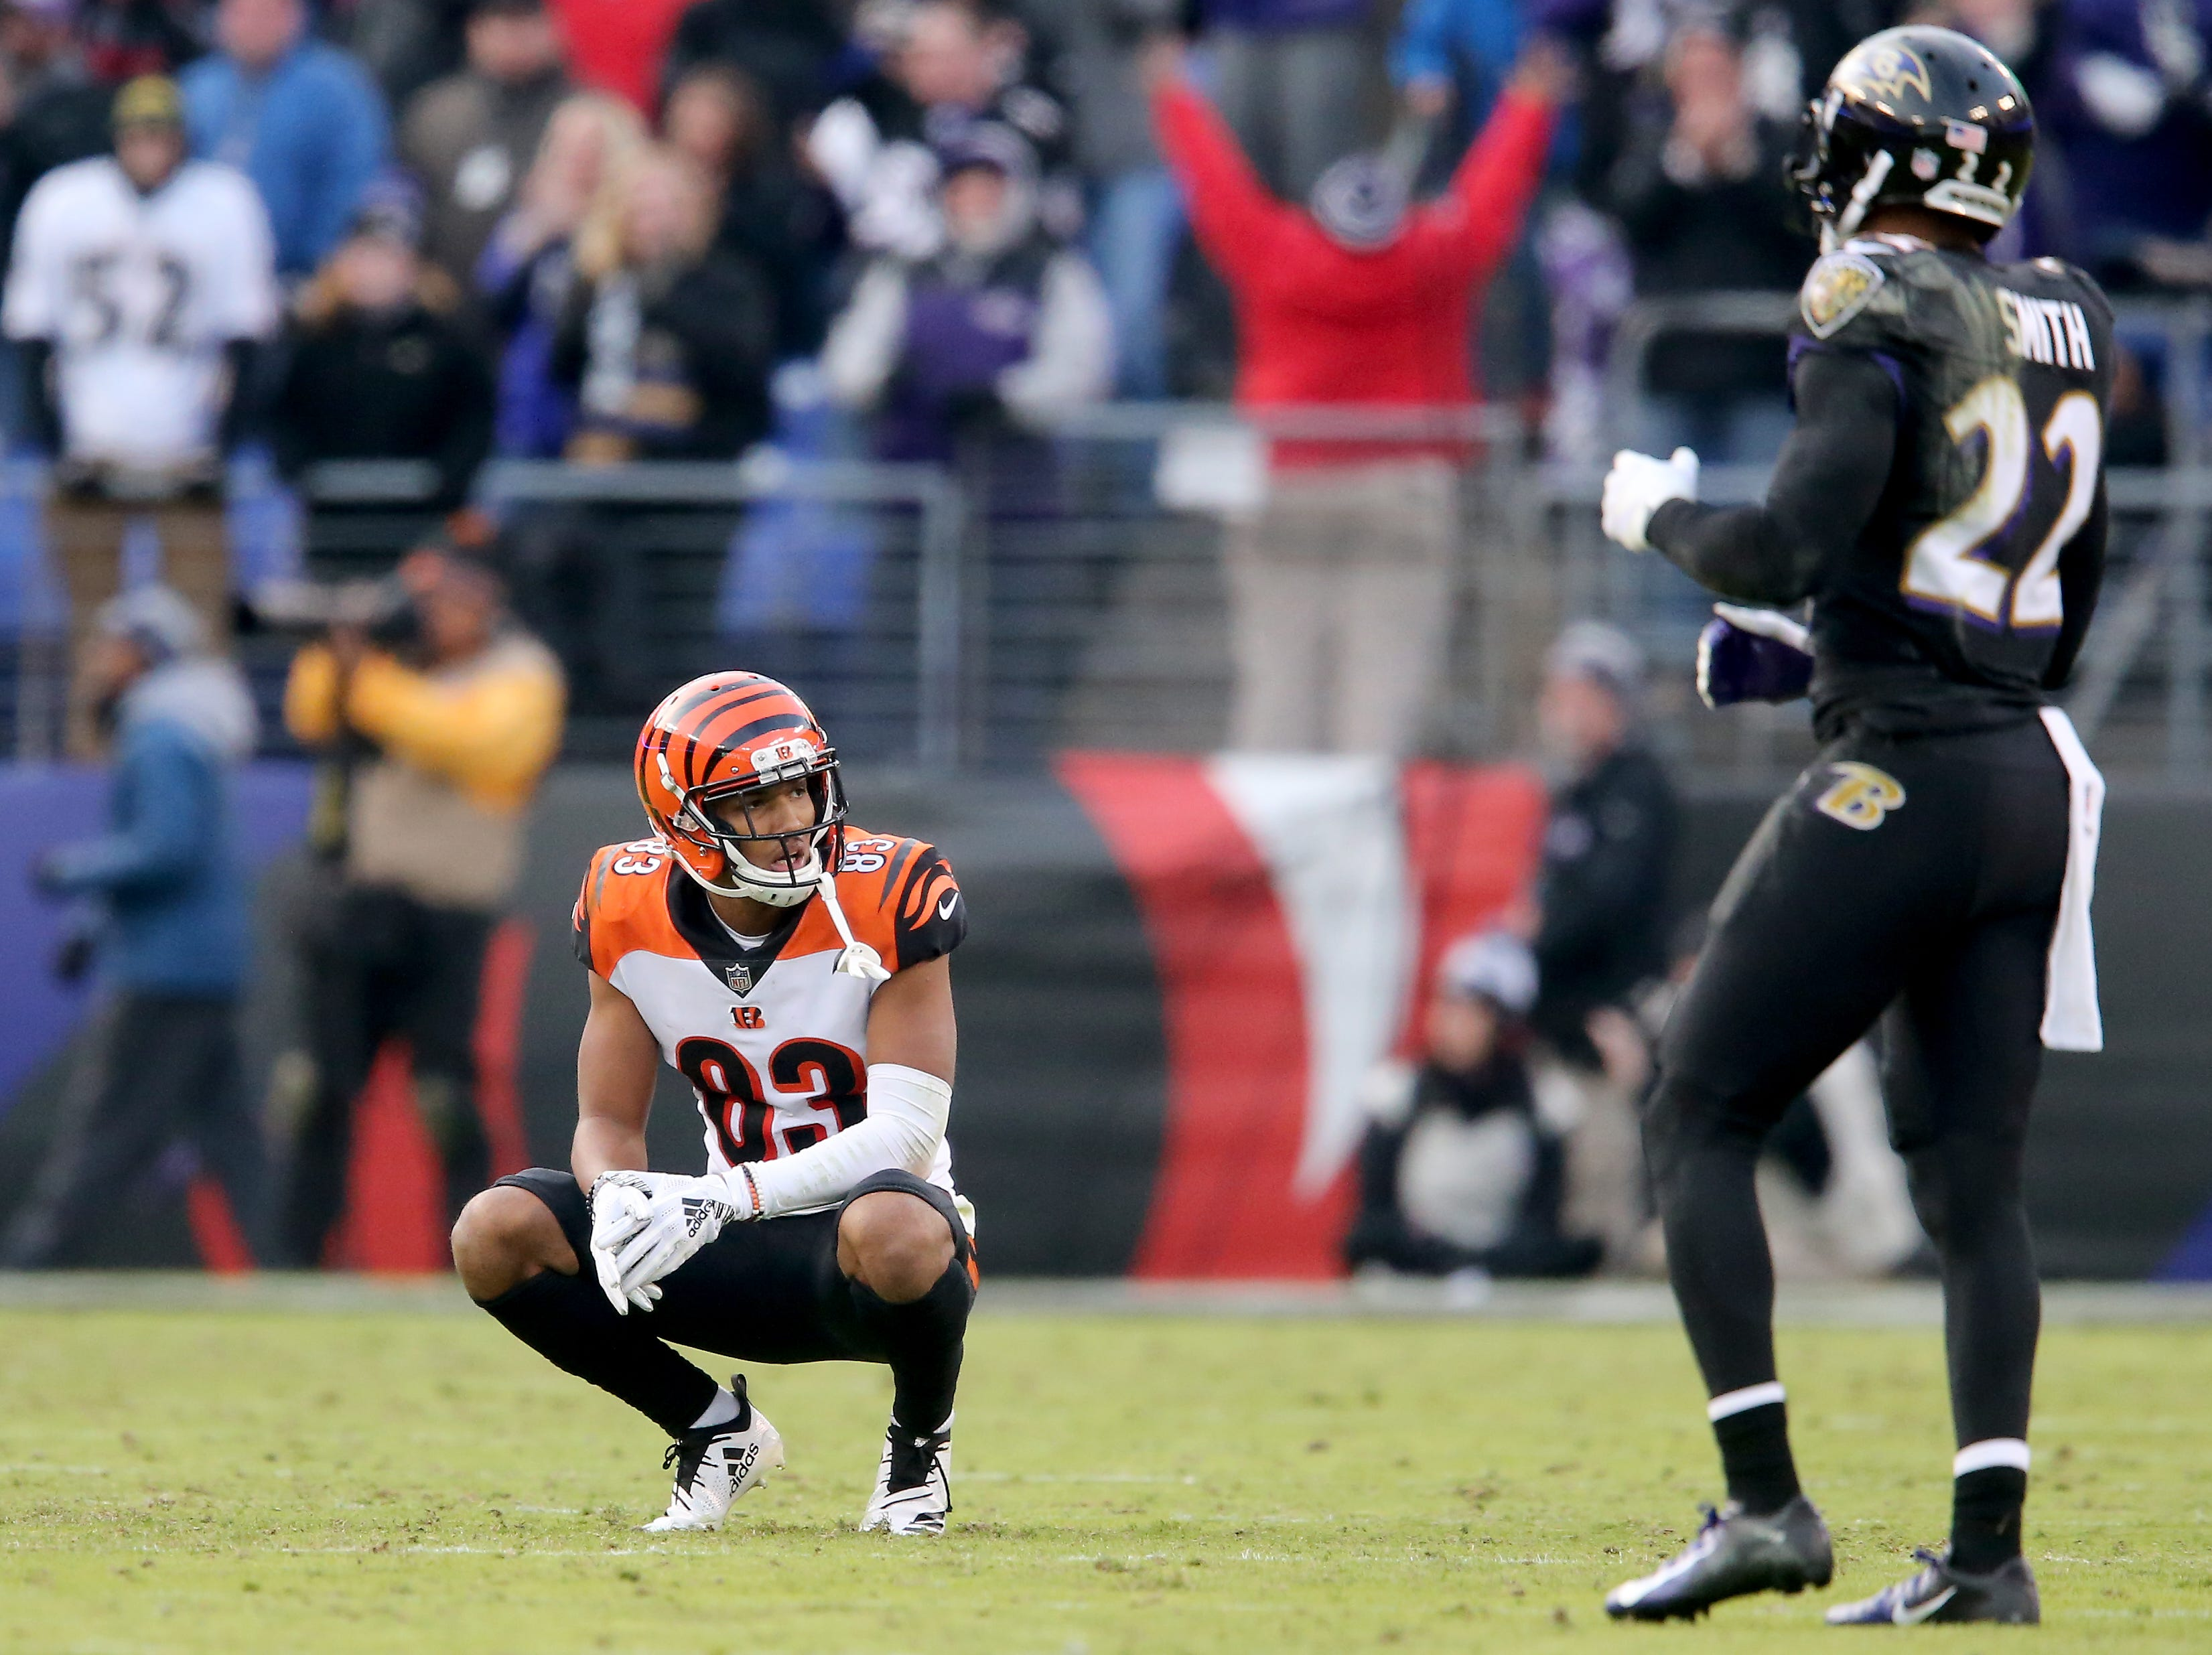 Analysis: Without A.J. Green, there's not enough for Cincinnati Bengals to overcome defense